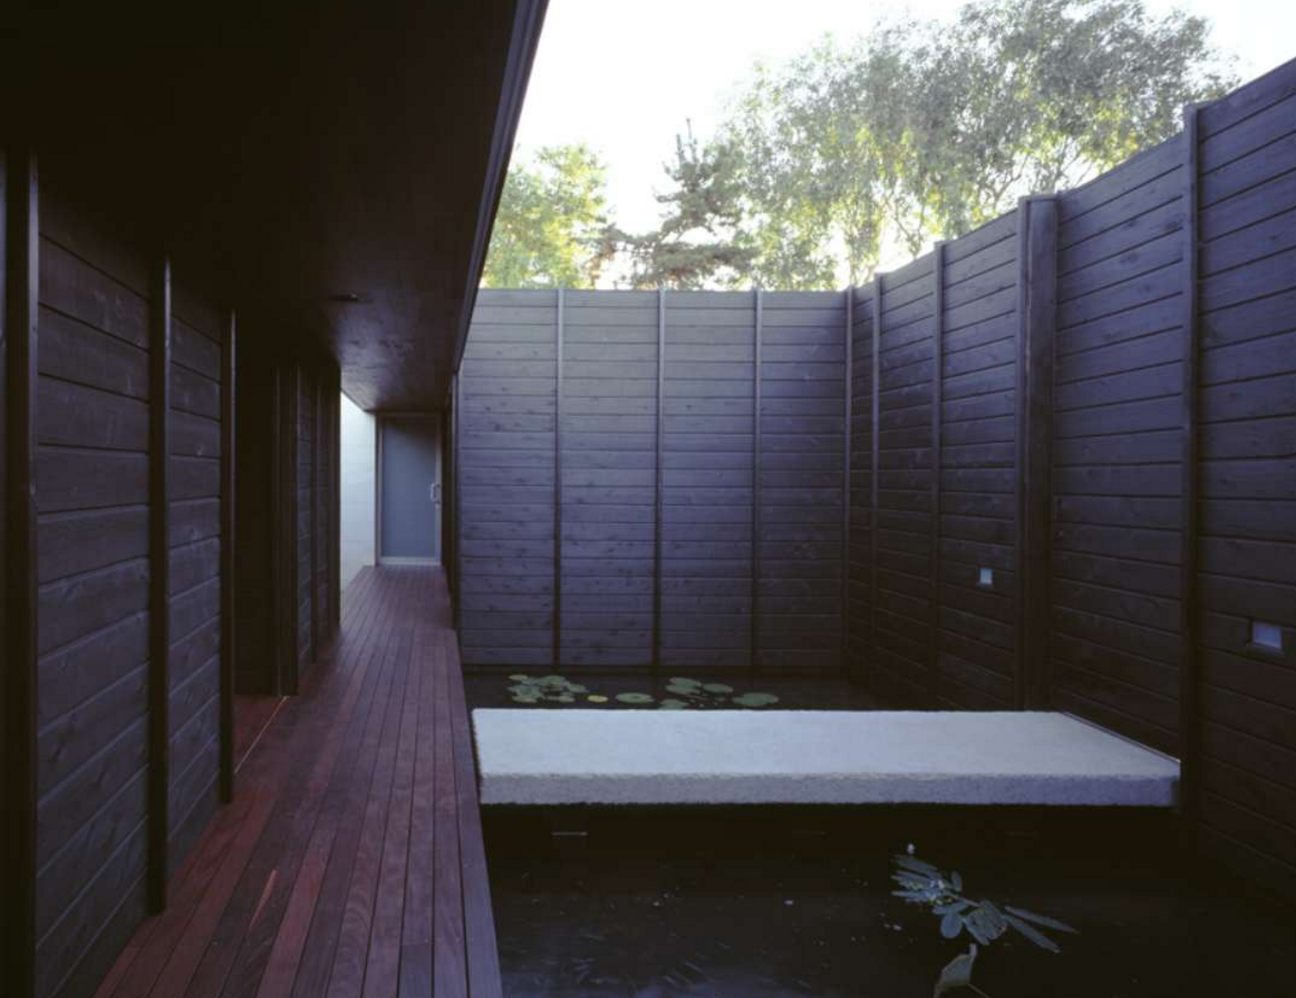 Shou sugi ban house,  Image via Architizer